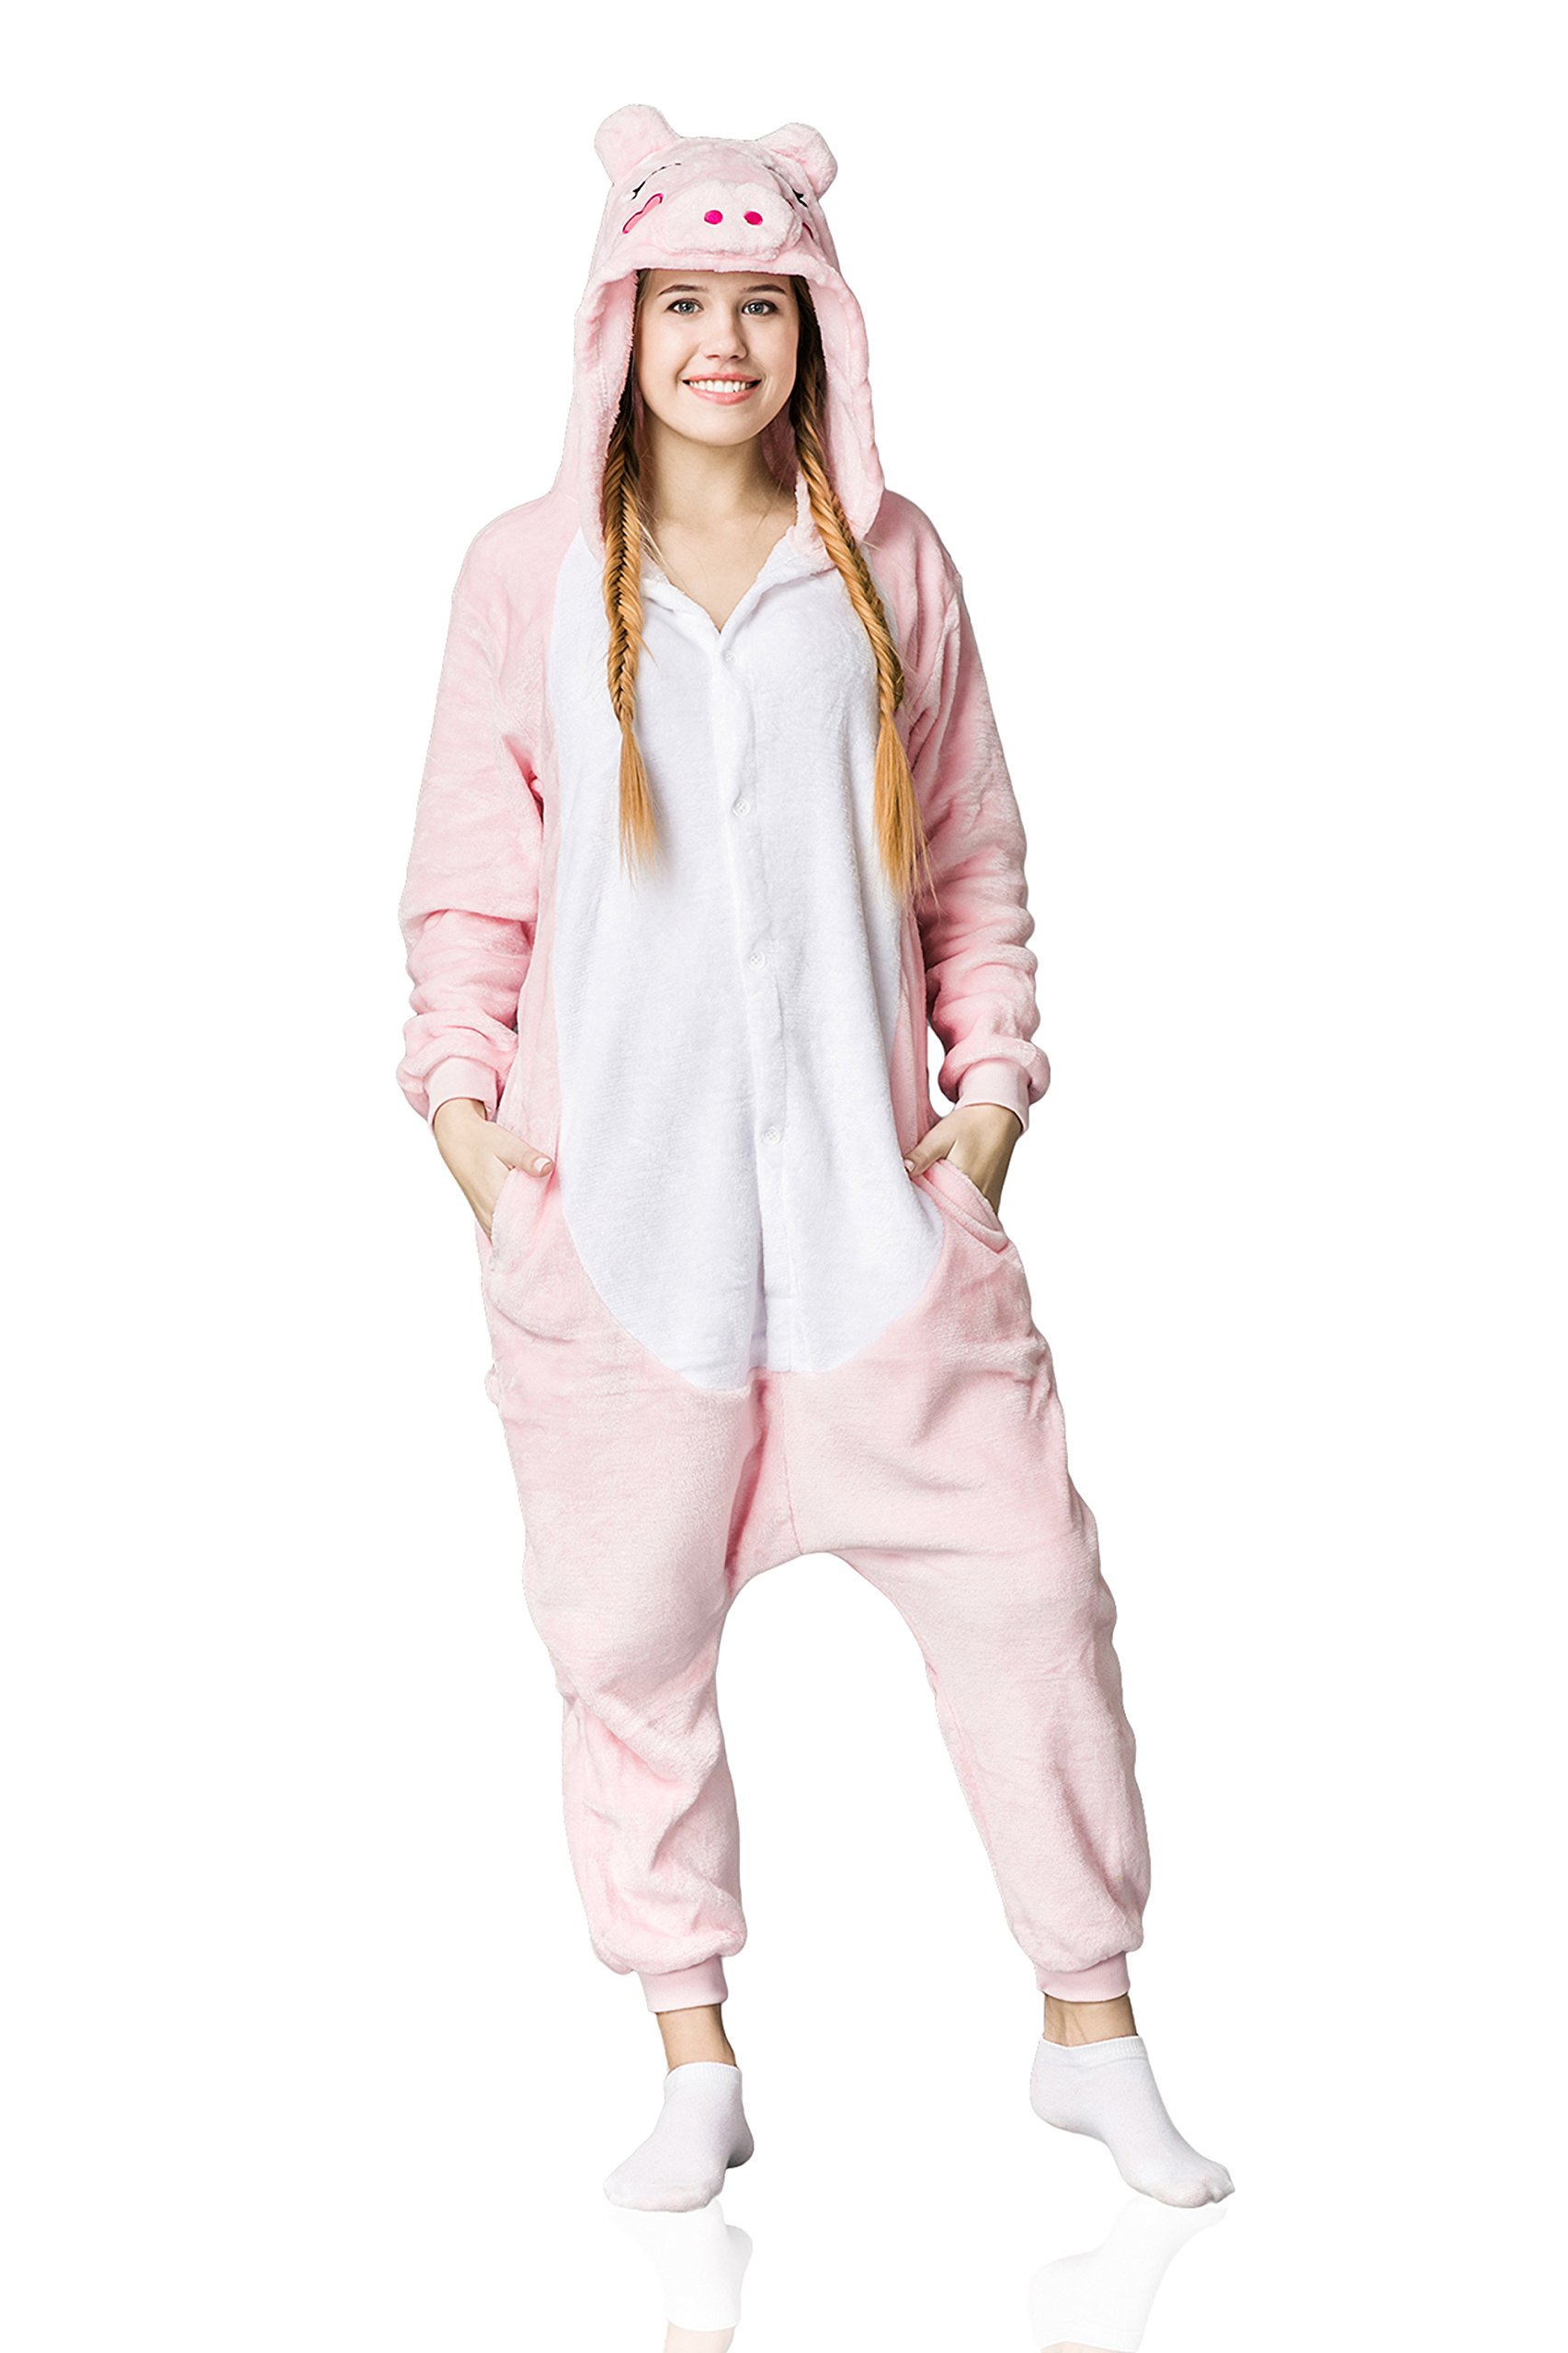 Nothing But Love Adult Piglet Onesie Pajamas Pig Kigurumi Animal Cosplay Costume Onsie Fleece Pjs (M, Pink, White)